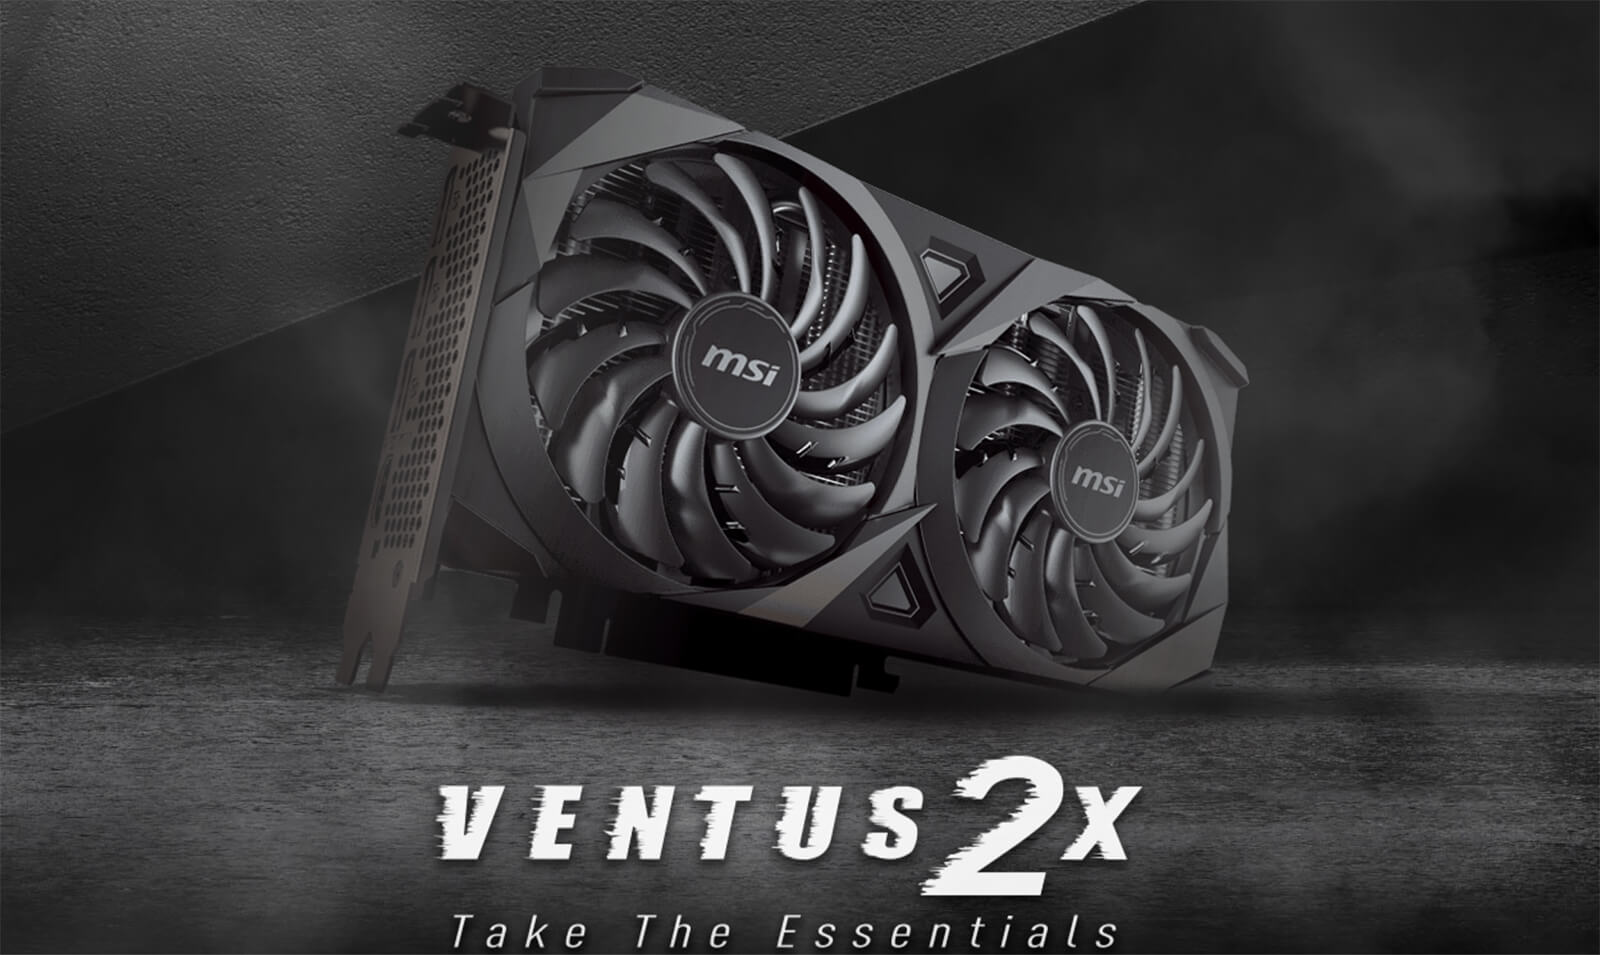 Msi Geforce Rtx™ 3060 Ventus 2x 12g Features